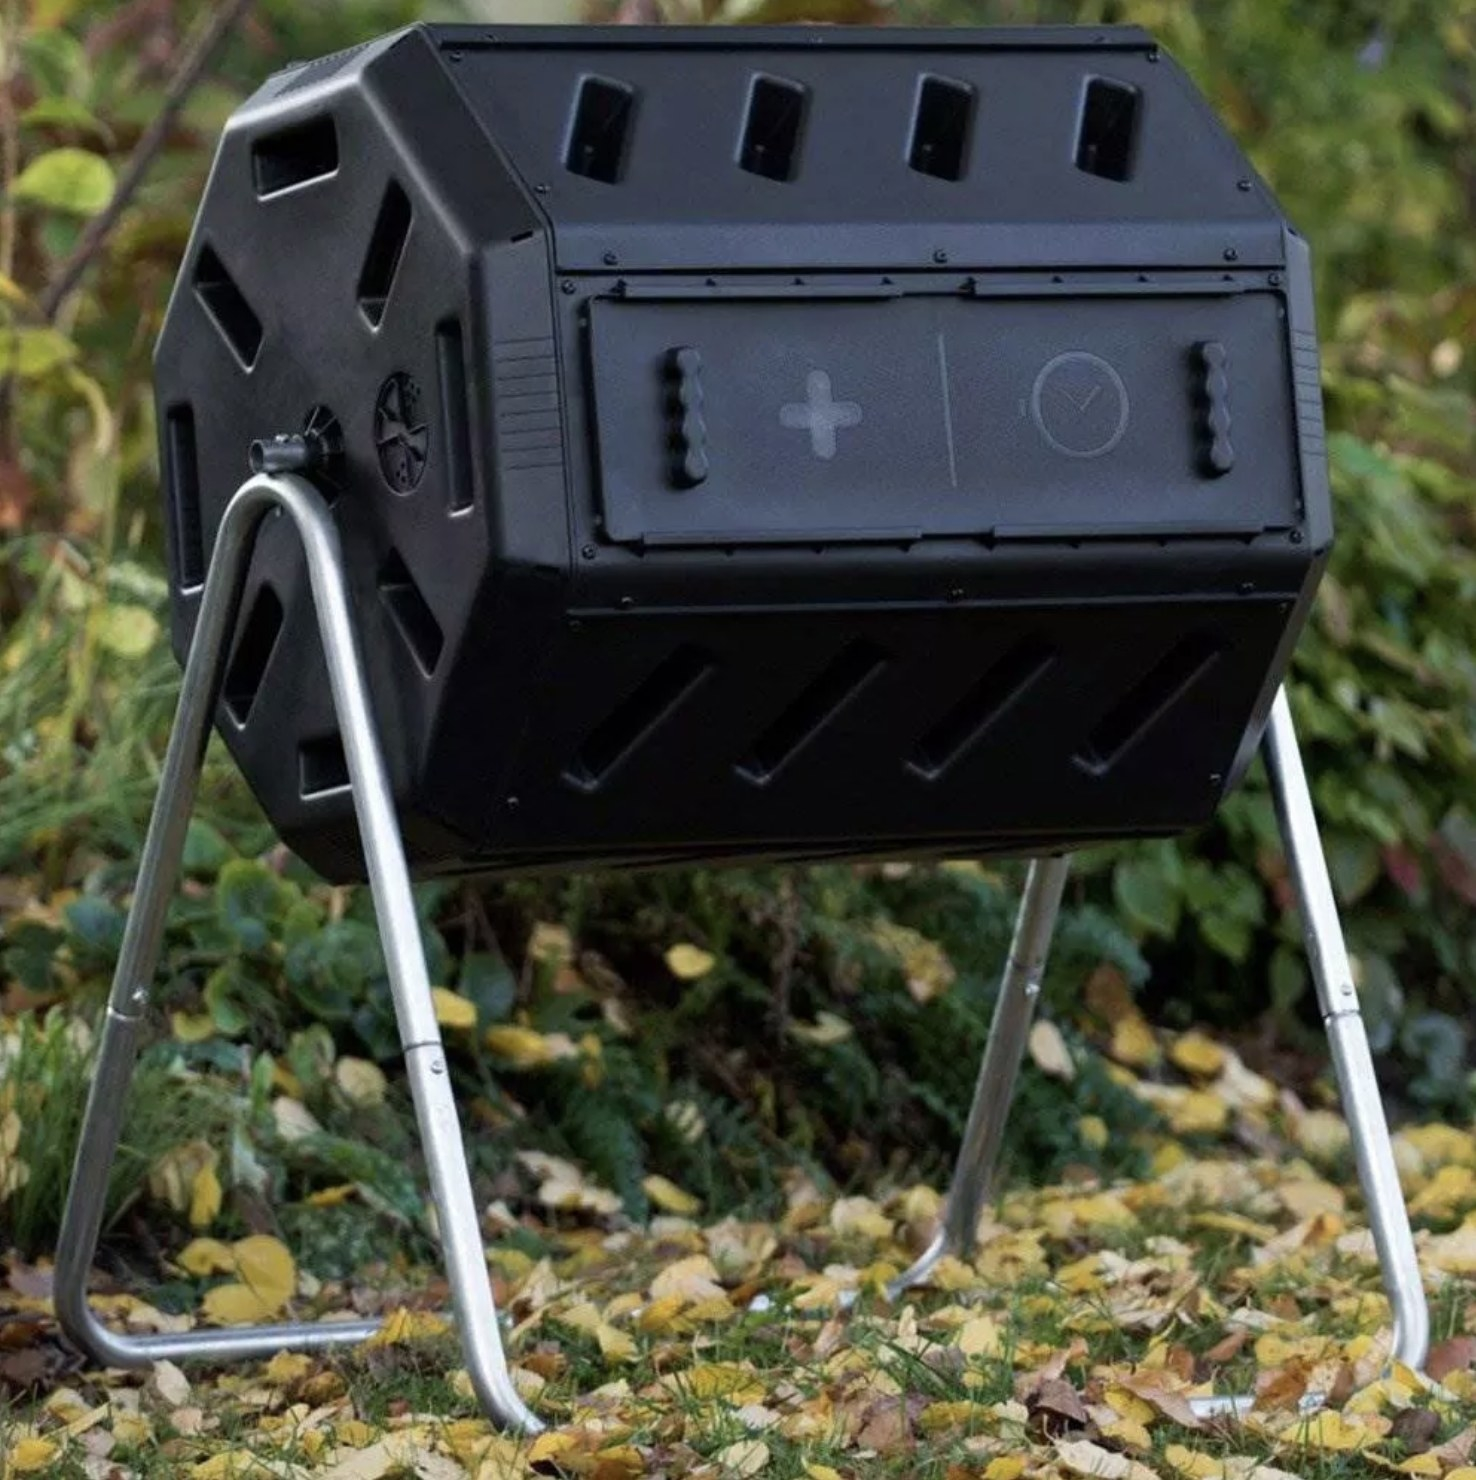 A black quick curing tumbling composting soil bin in a backyard